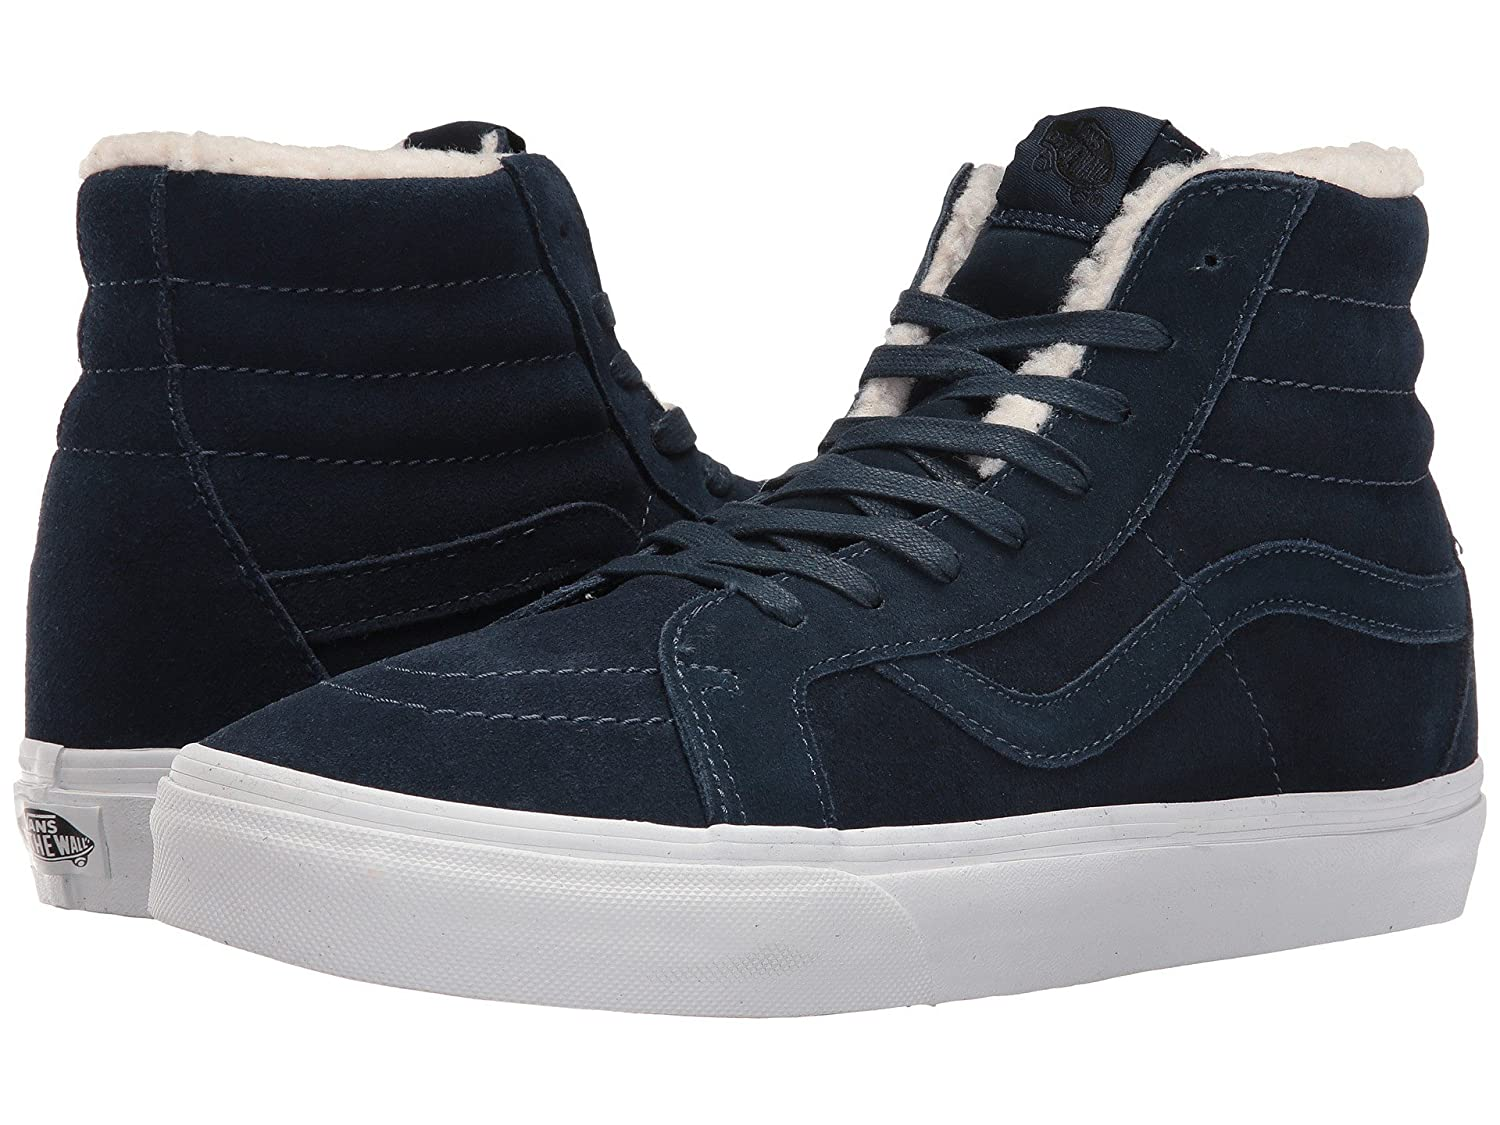 Vans Unisex Sk8-Hi Slim Women's Skate Shoe B01N4A7GPX 41 M EU / 10 B(M) US Women / 8.5 D(M) US Men|(Suede Fleece) Dress Blues/True White